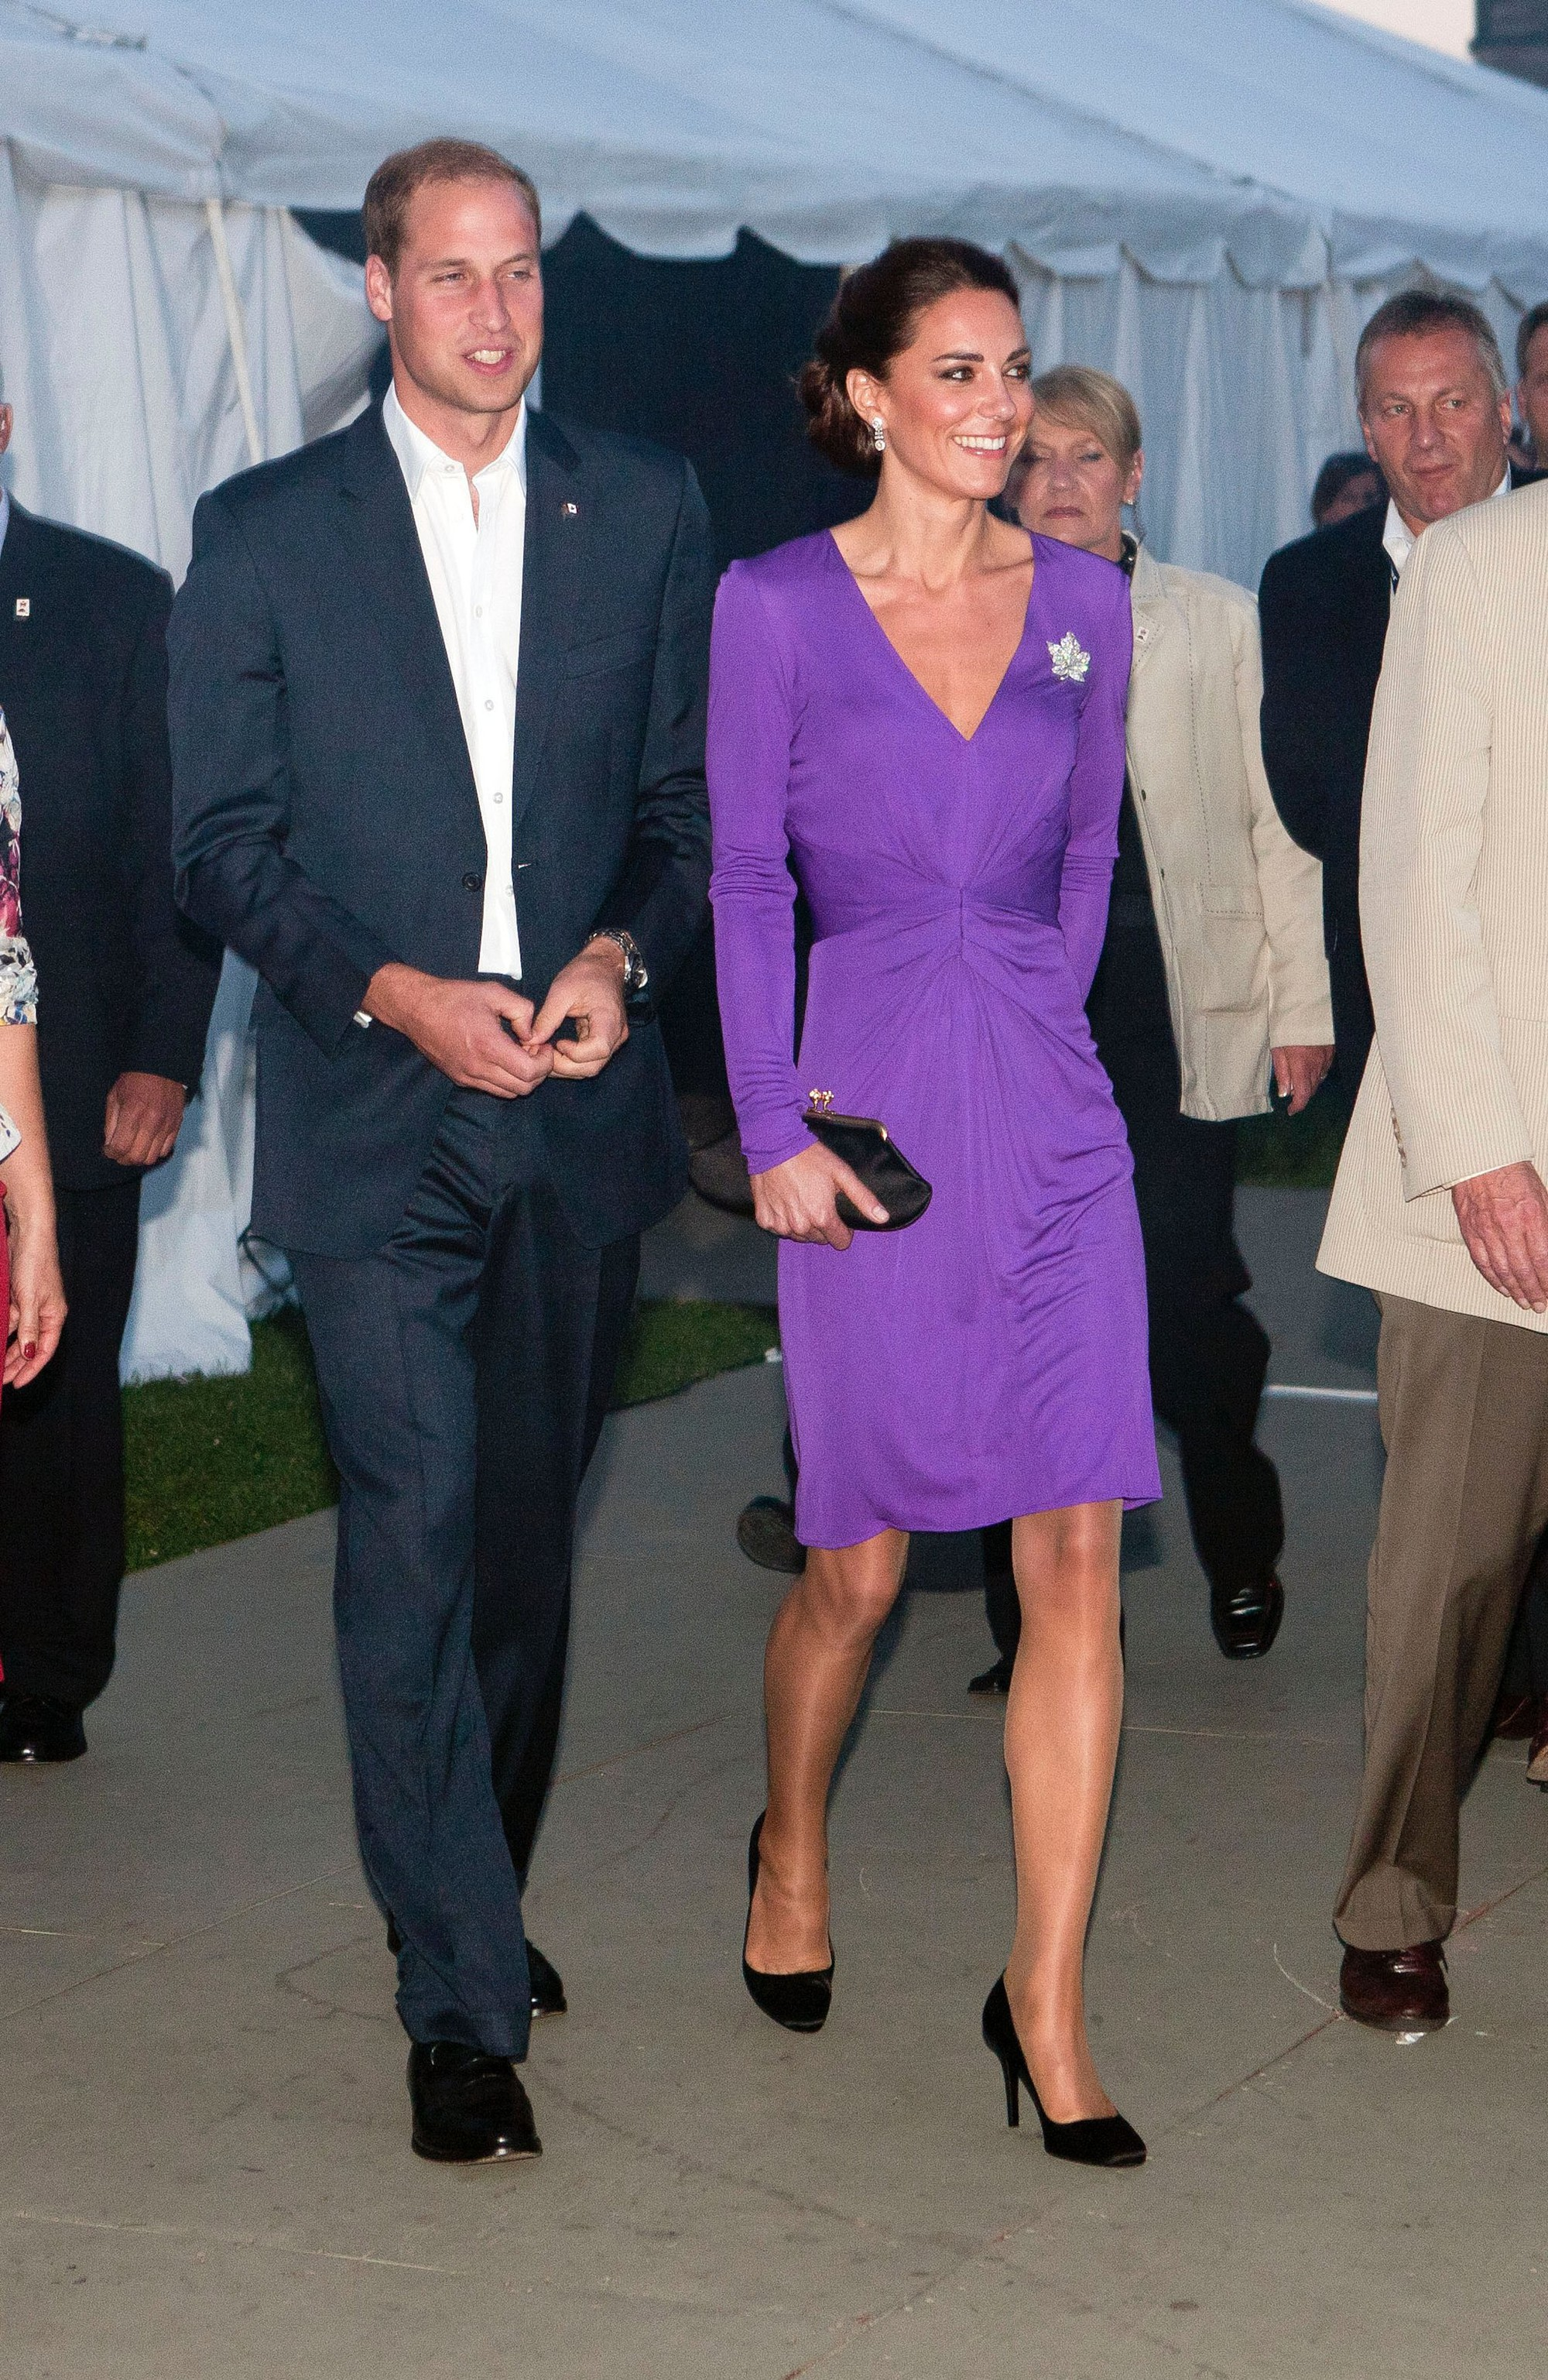 kate-donned-purple-frock-special-event-ottawa-canada